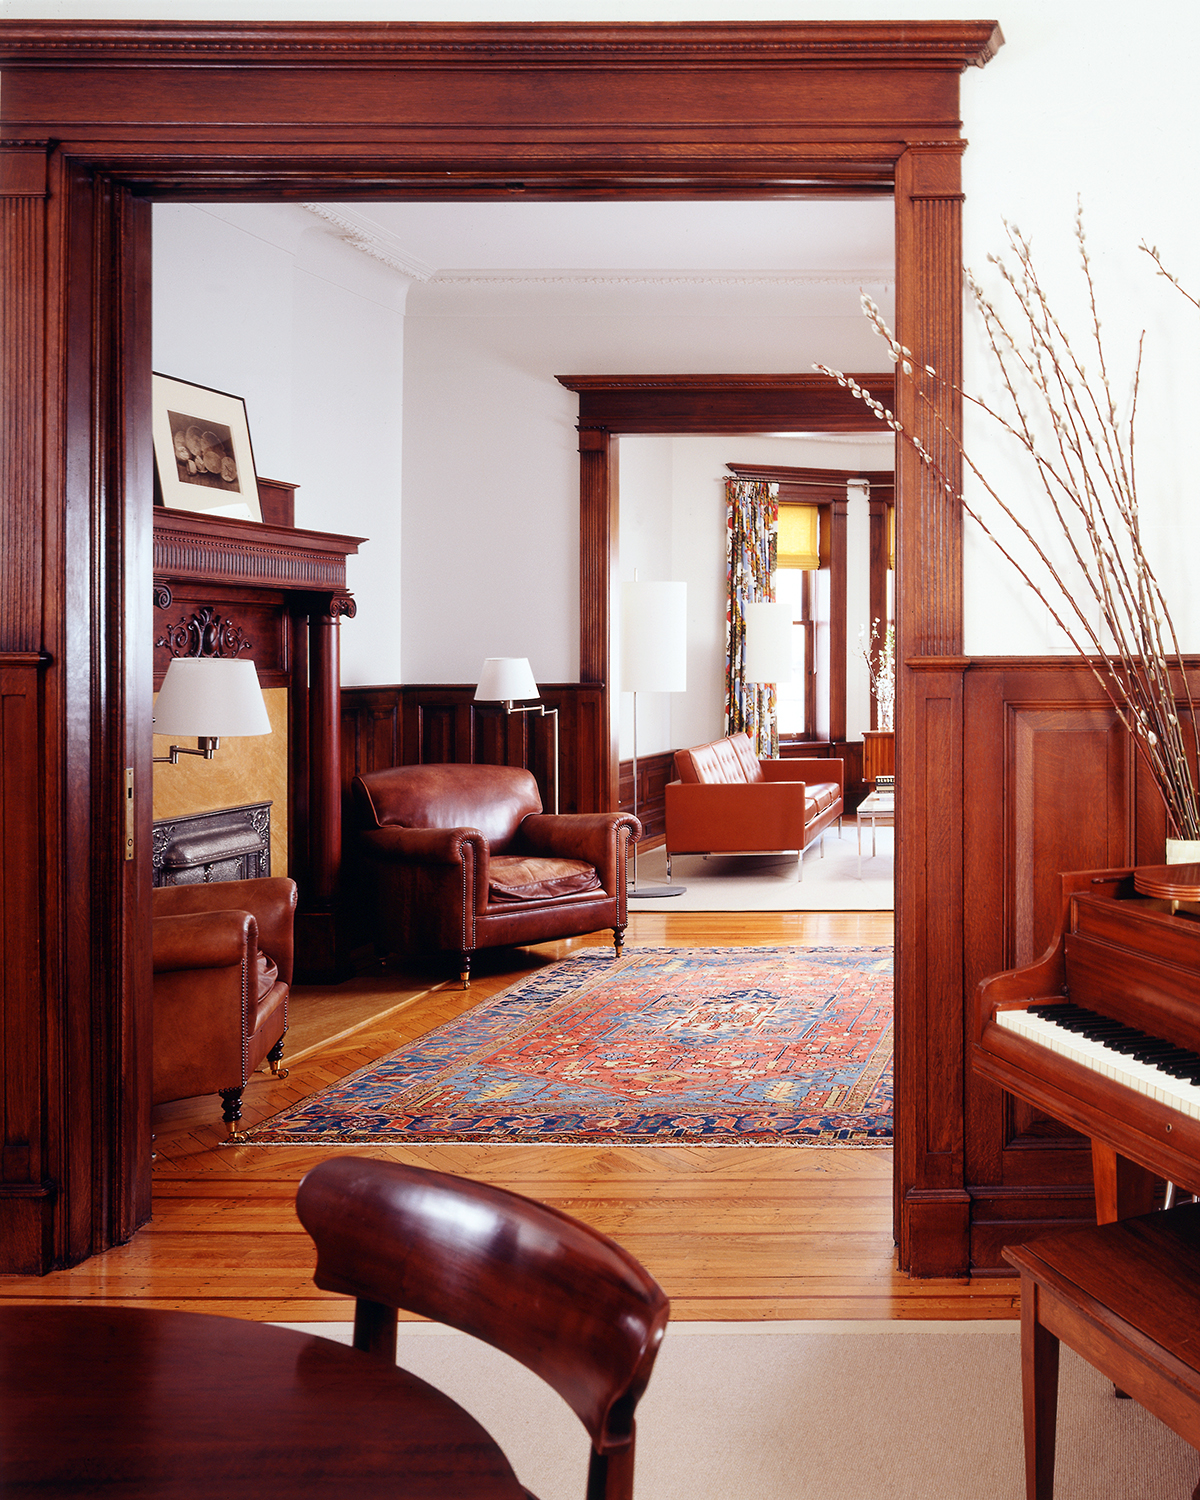 grand limestone house refurbished casings mahogany oak millwork bay window park slope brooklyn architects